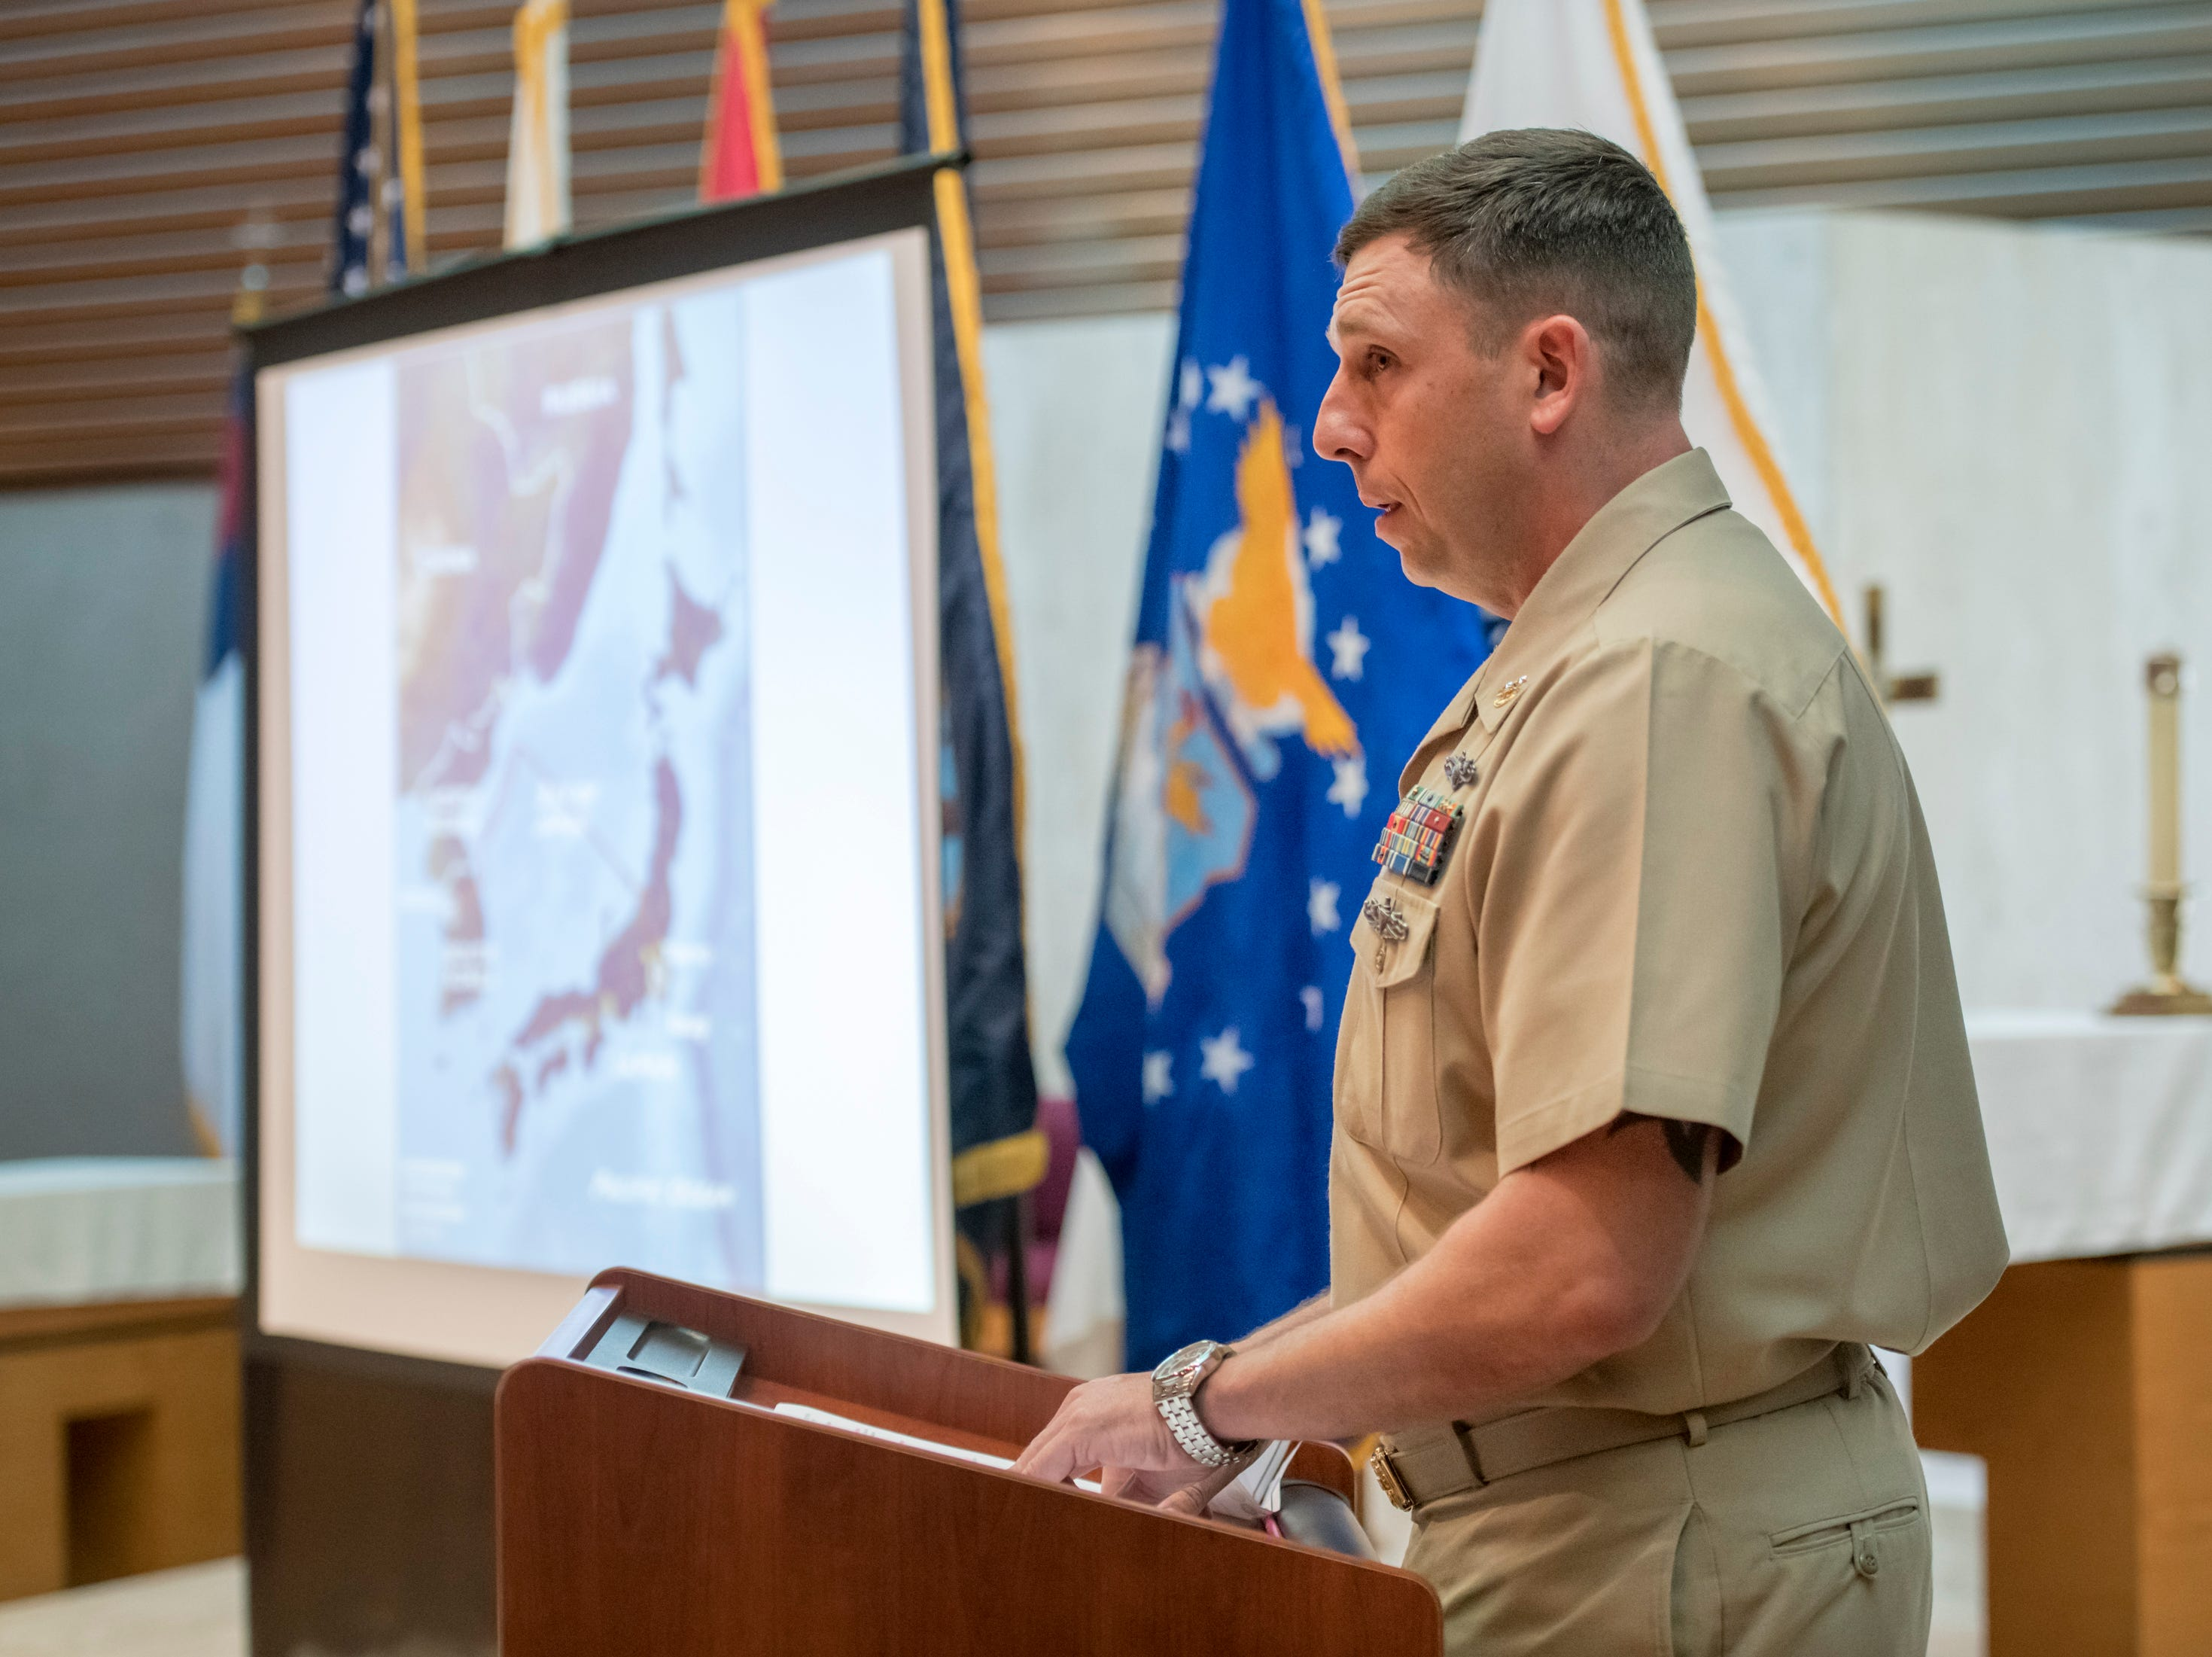 """Master Chief Seth Lambert speaks during a memorial service for the fallen crew of the EC-121M """"Beggar Shadow"""" reconnaissance plane at Corry Station in Pensacola on Monday, April 15, 2019.  The Navy EC-121M reconnaissance aircraft (PR-21/BuNo 135749) of Fleet Air Reconnaissance Squadron One (VQ-1) was shot down over the Sea of Japan by North Korea on Monday, April 14,1969.  All 31 crewmembers were killed, including nine NAVSECGRU cryptologists."""